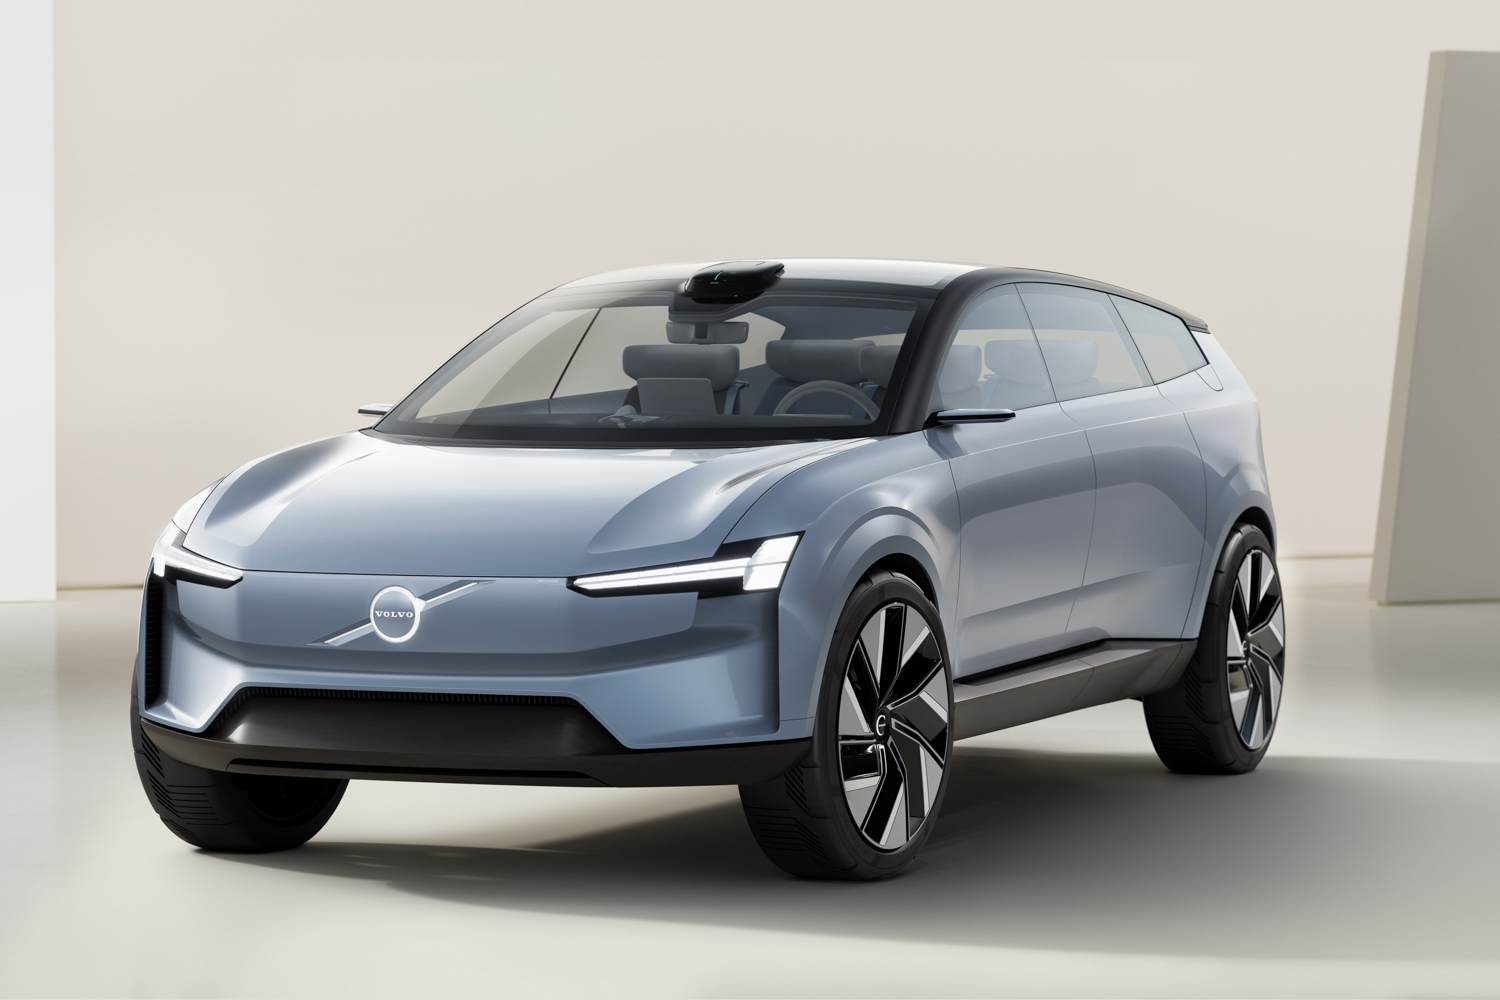 Car News | Volvo's Recharge concept is a 'manifesto' | CompleteCar.ie